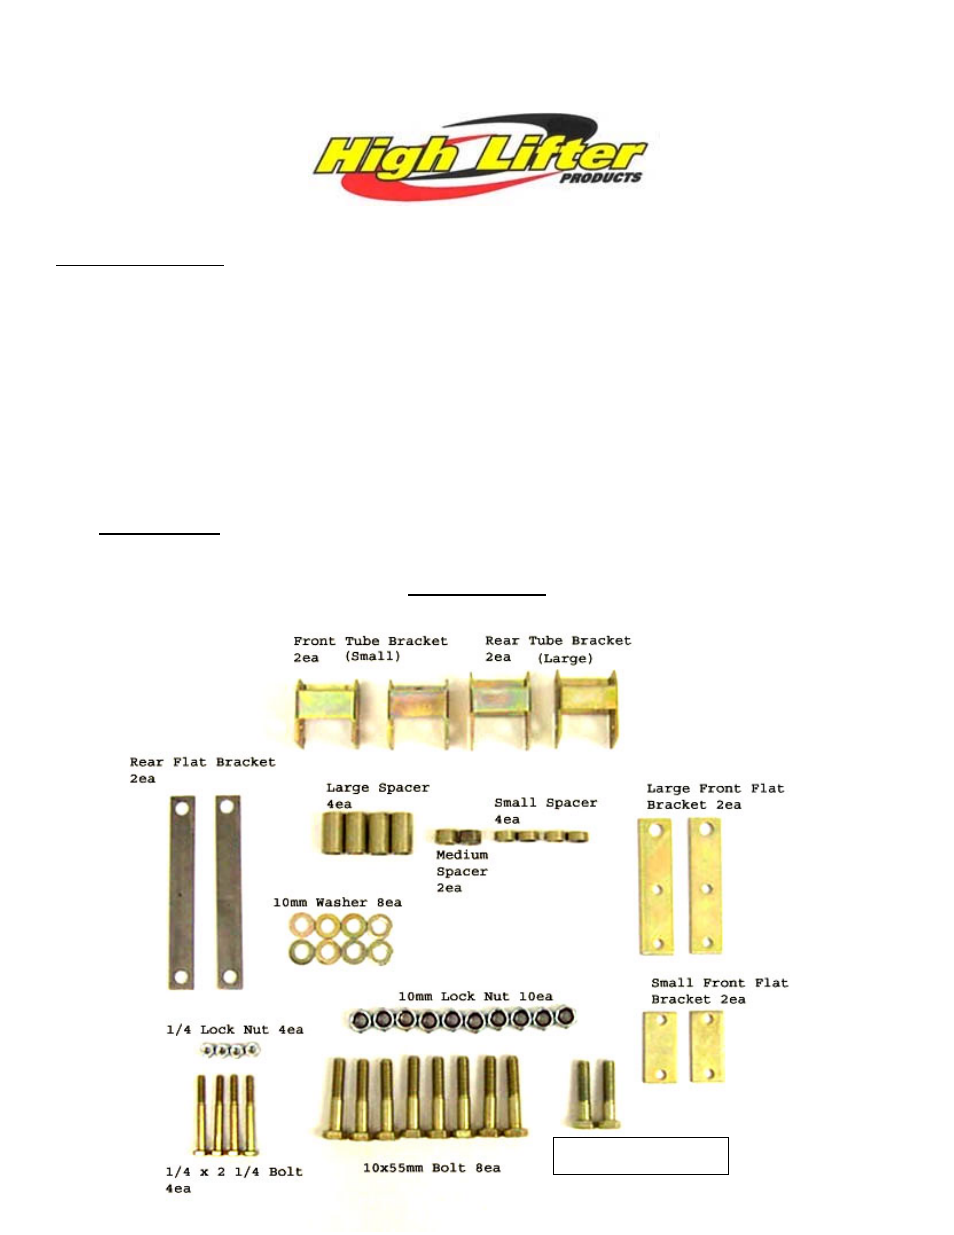 High Lifter Lift Kit for Suzuki Eiger 400 2x4, 4x4 (02-07) User Manual | 5  pages